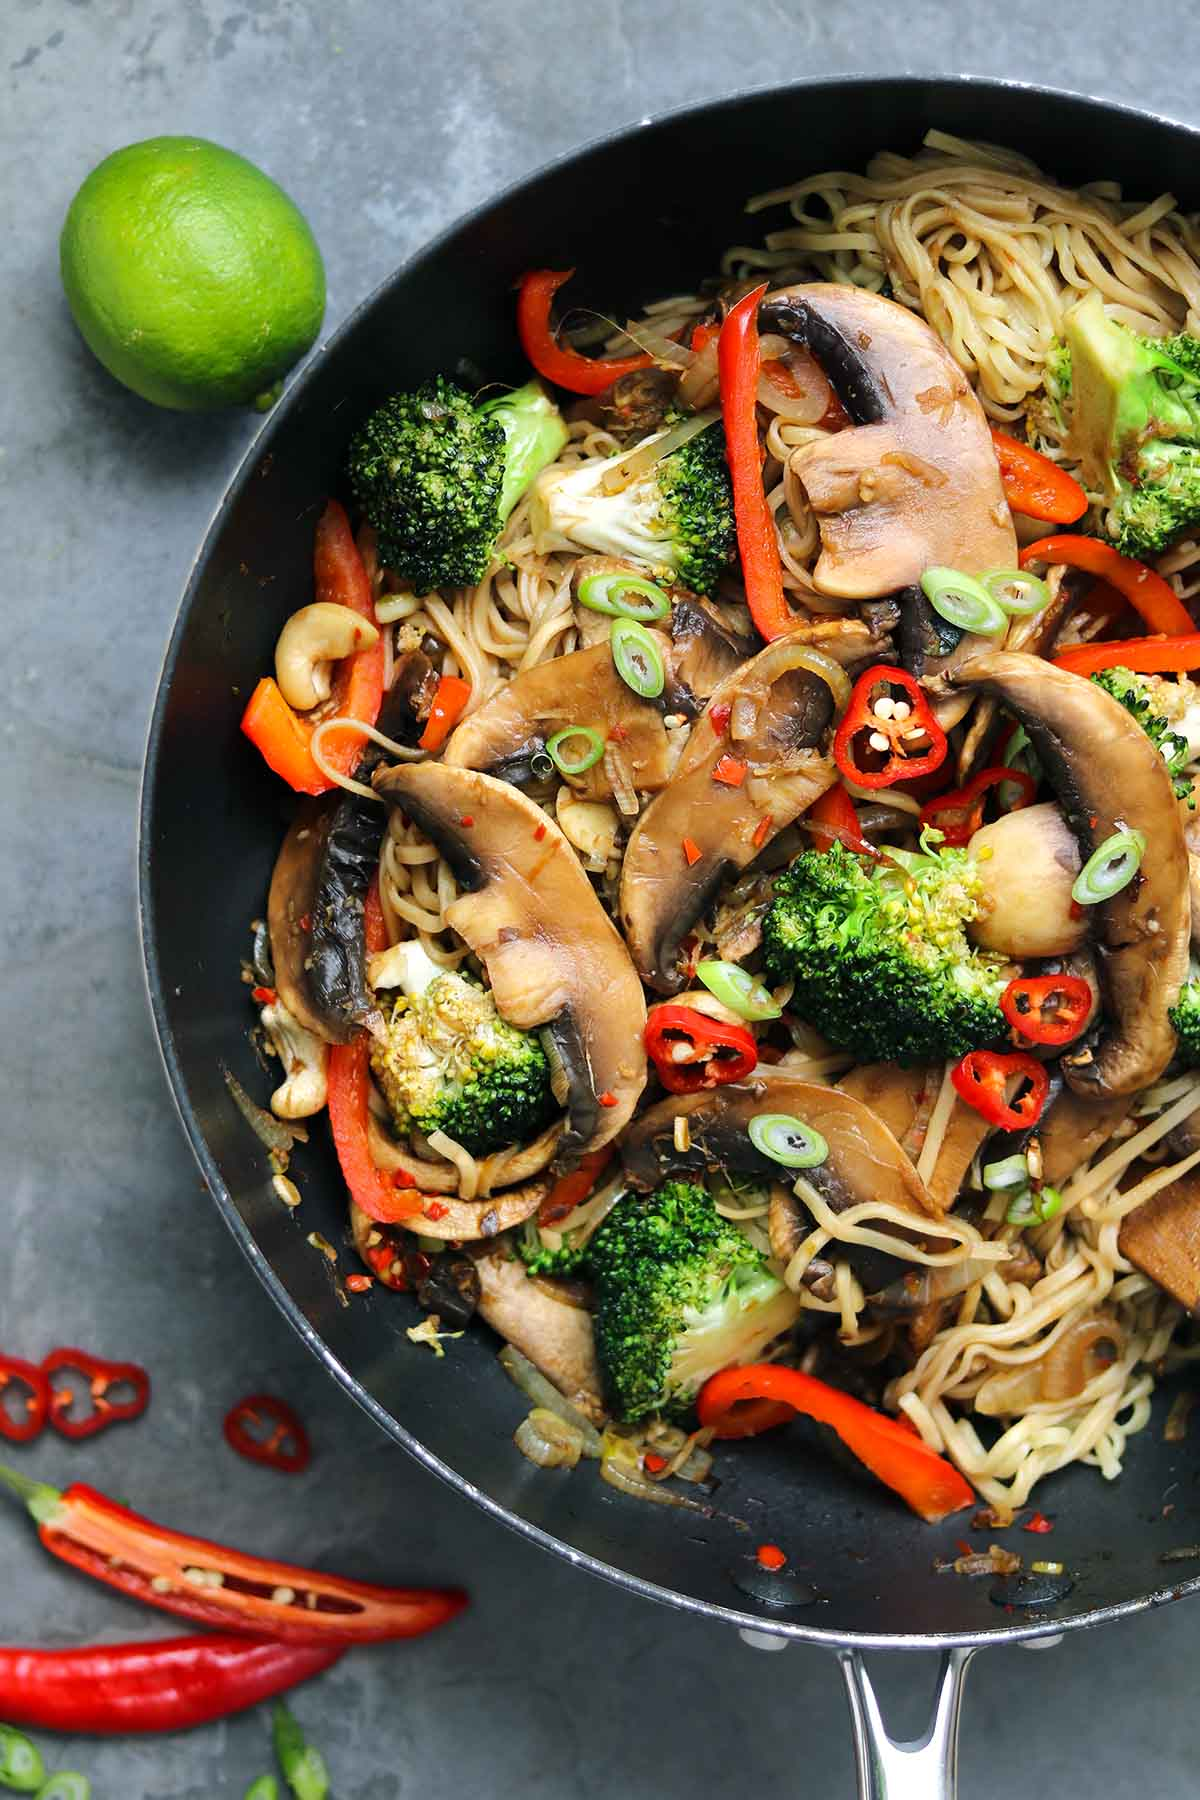 mushrooms and broccoli with spring onion, chilli and noodles